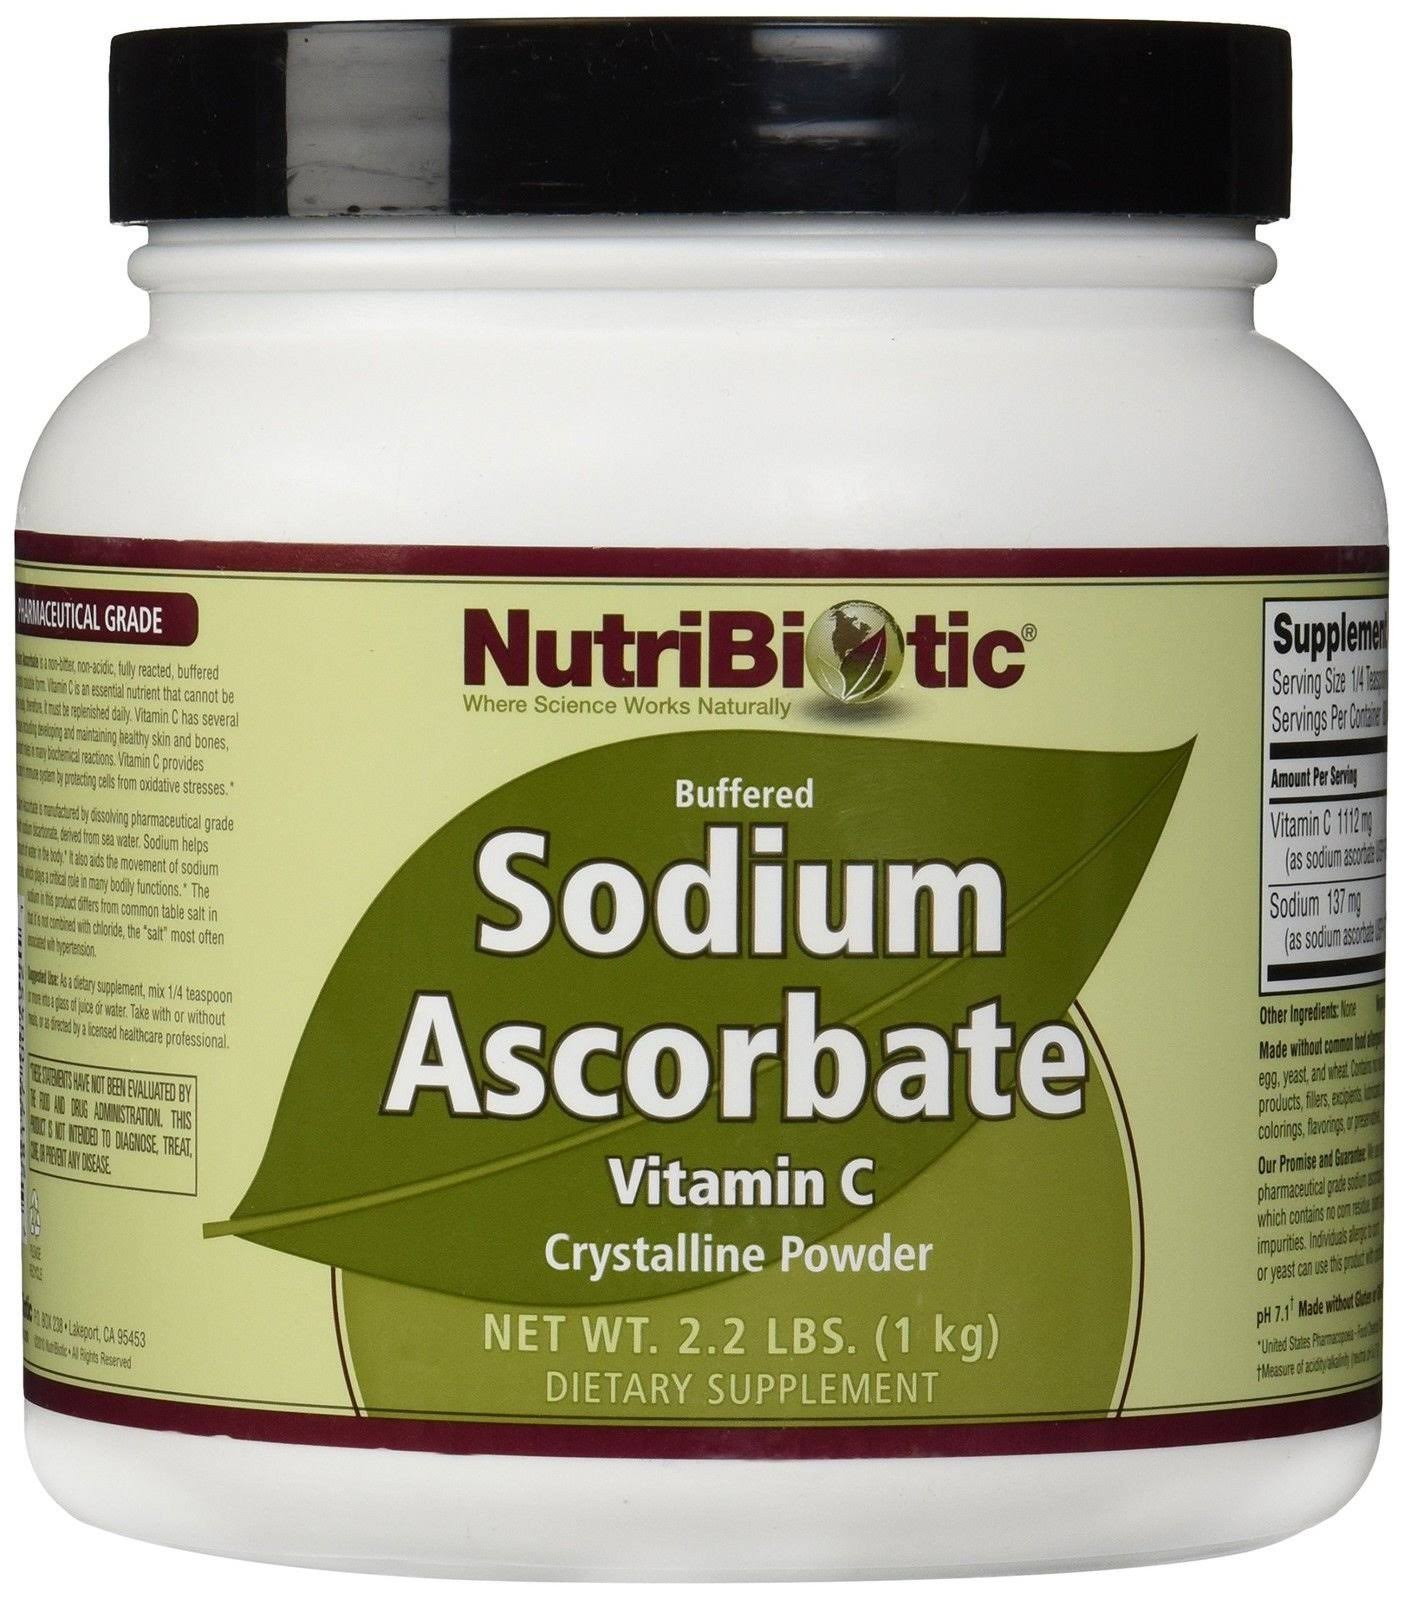 Nutribiotic Sodium Ascorbate Powder Supplement - 2.2lbs